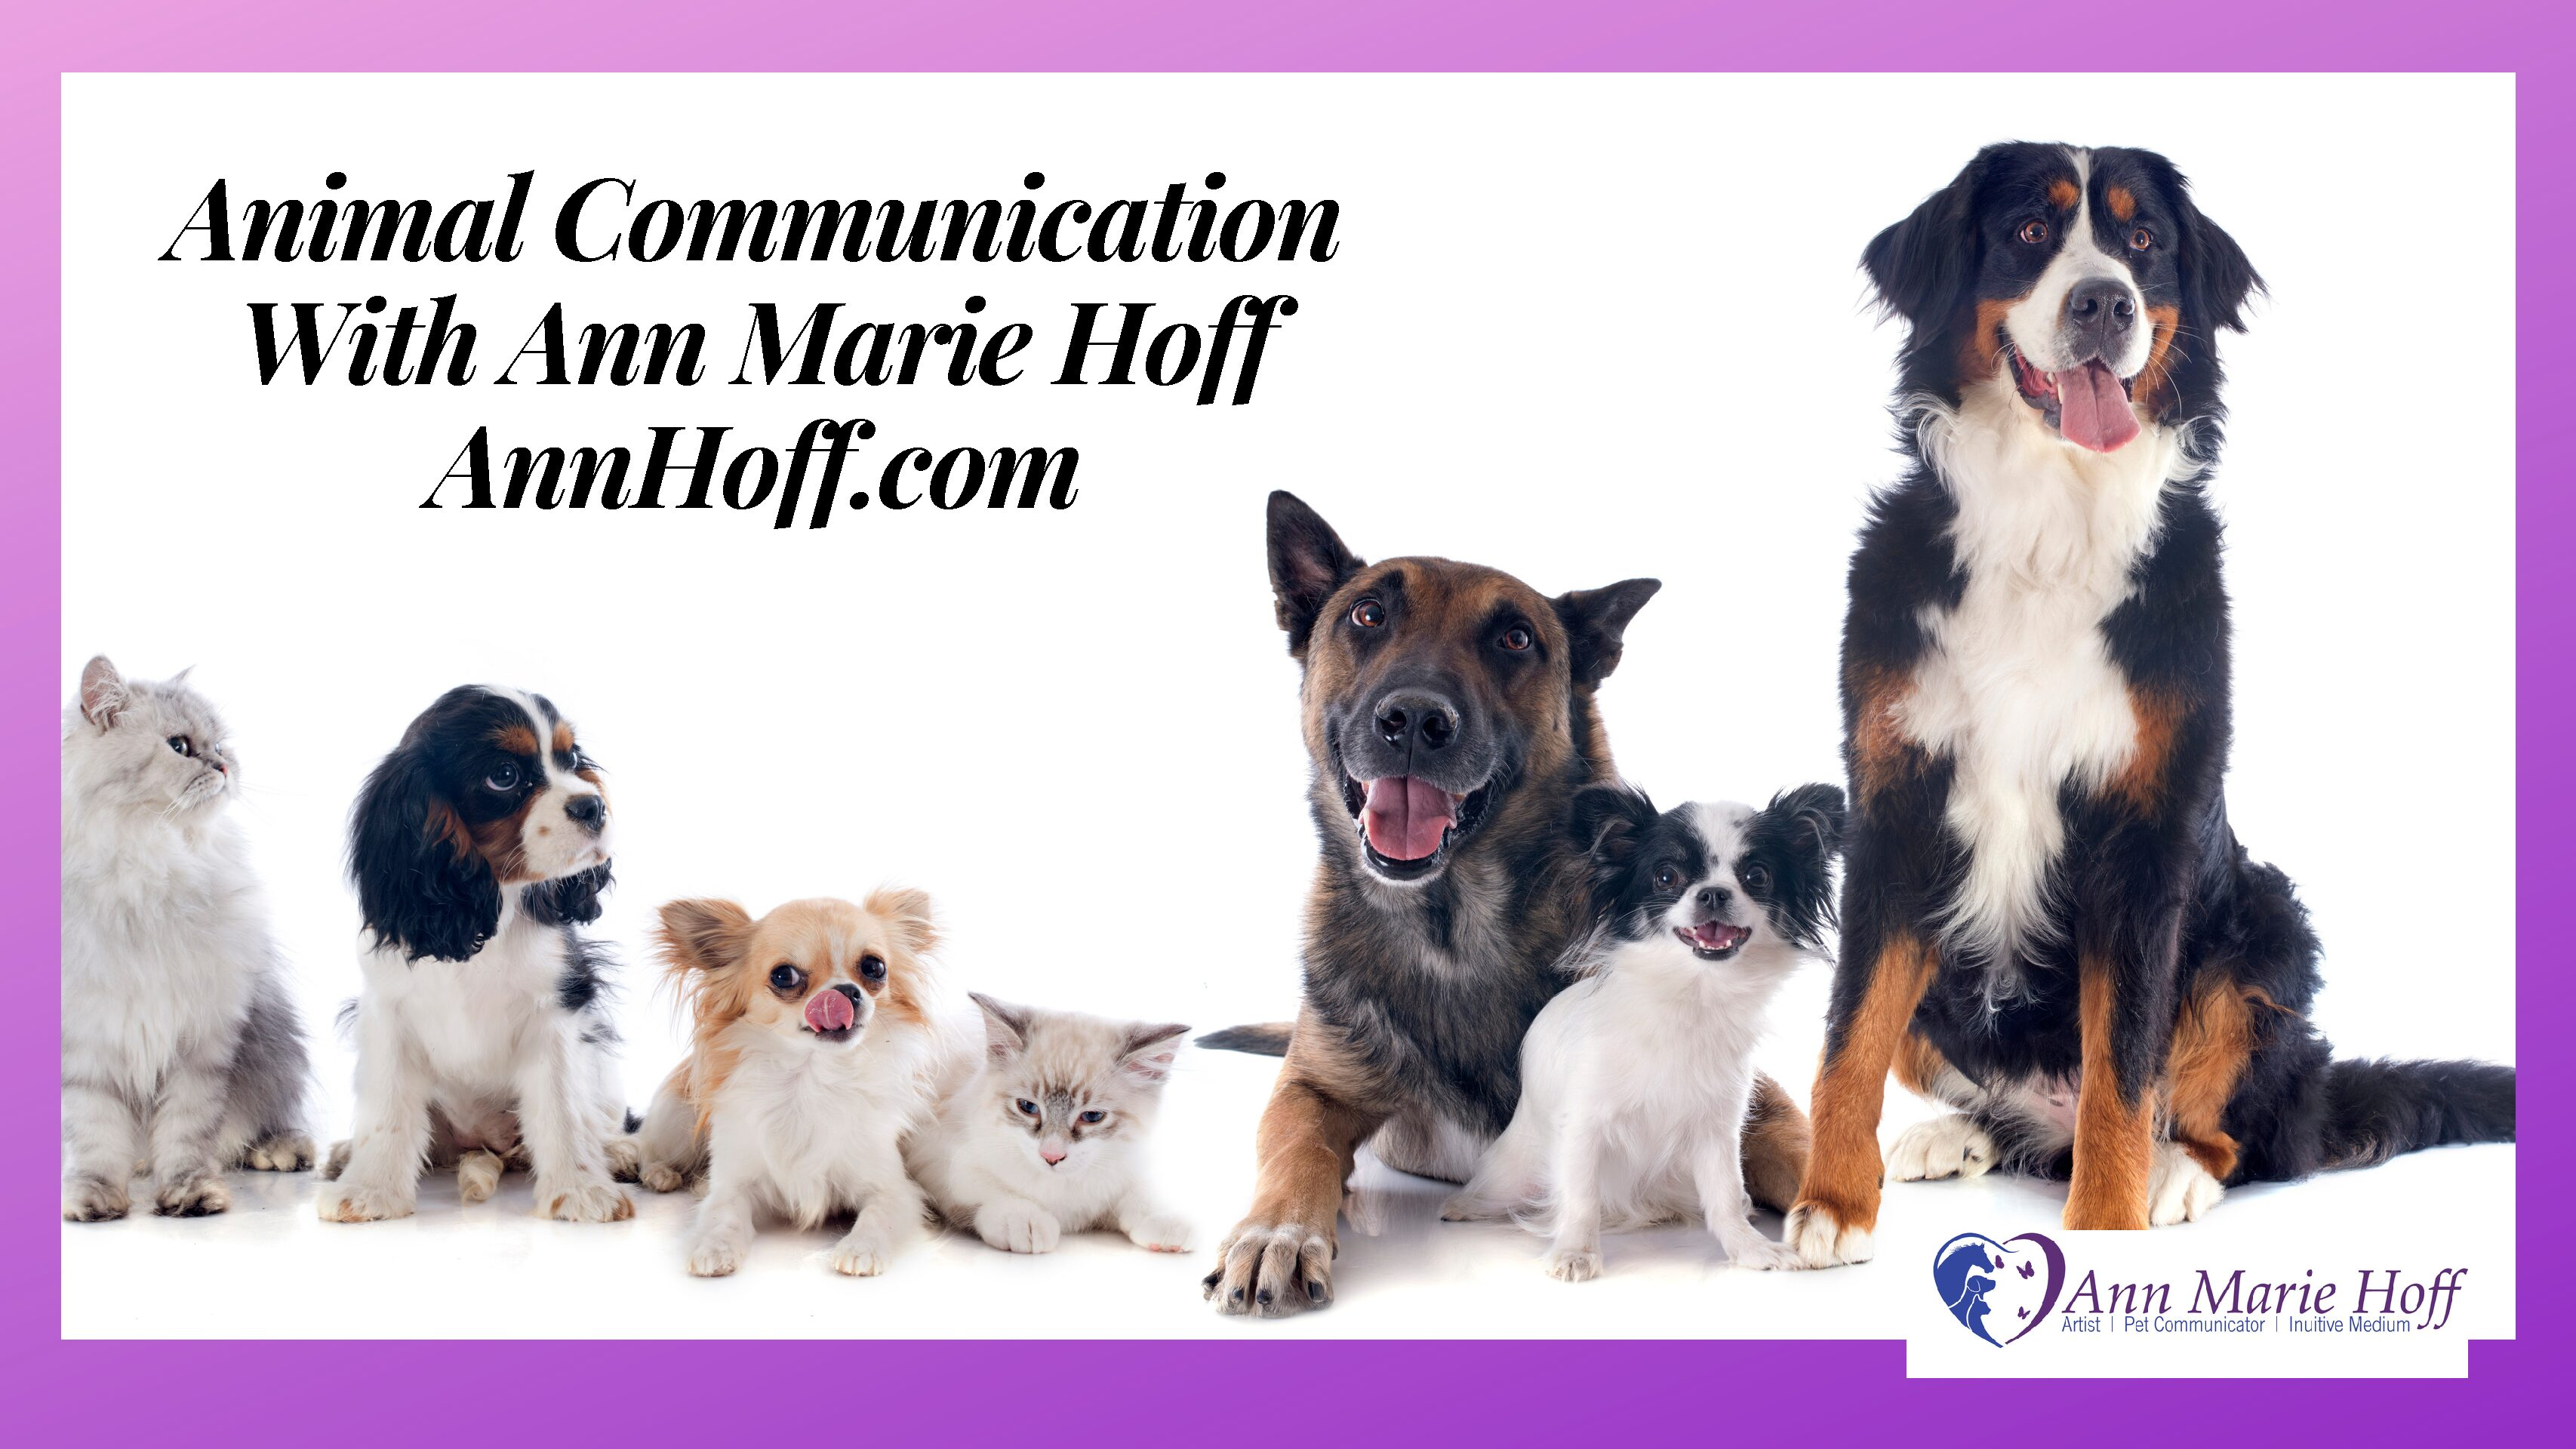 Animal Communication with Ann Marie Hoff